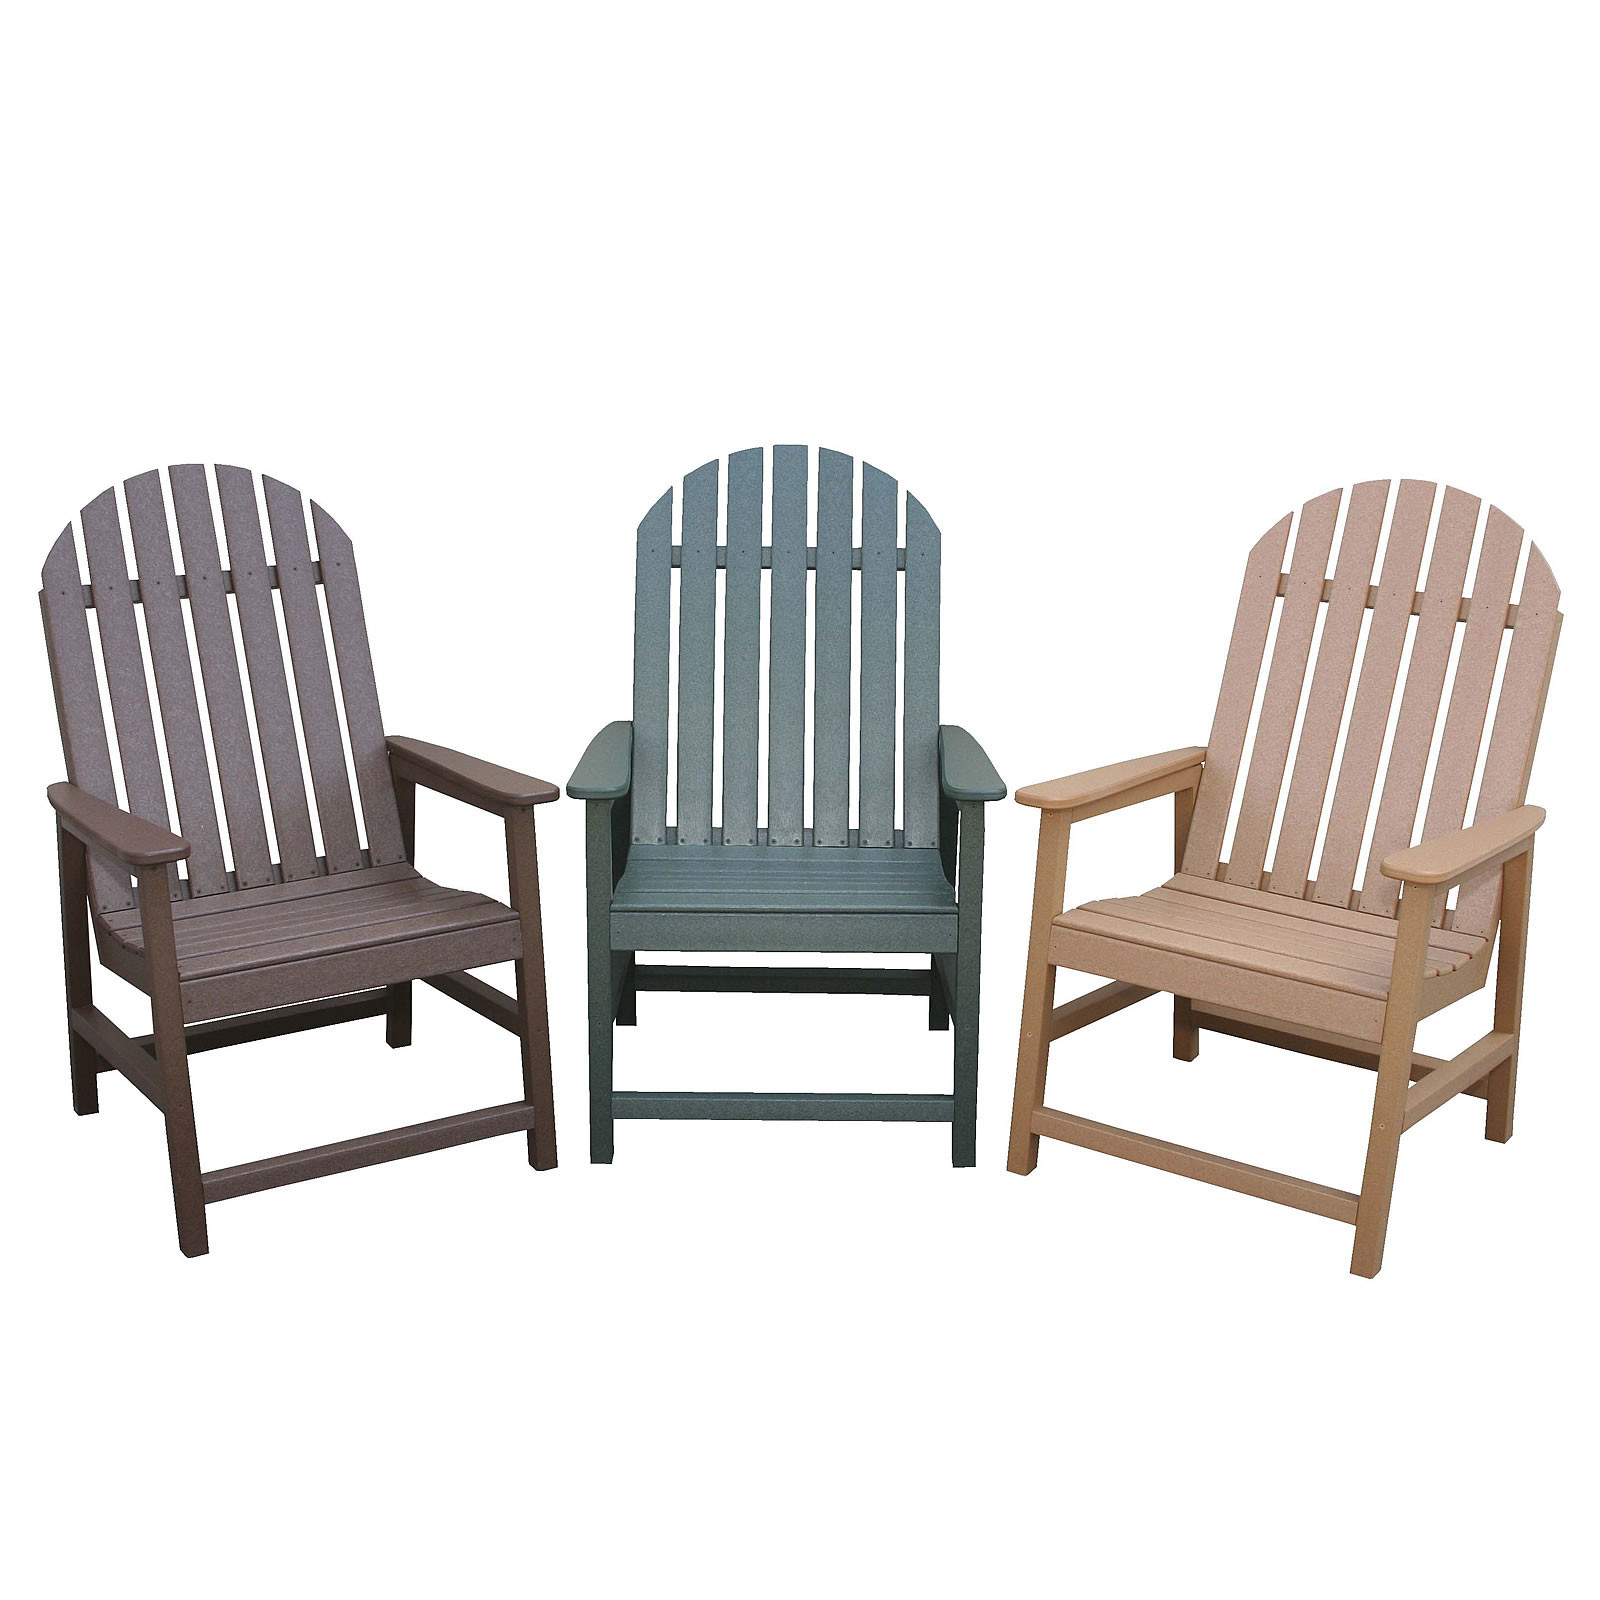 Eagle e Alexandria Chairs mercial Collections